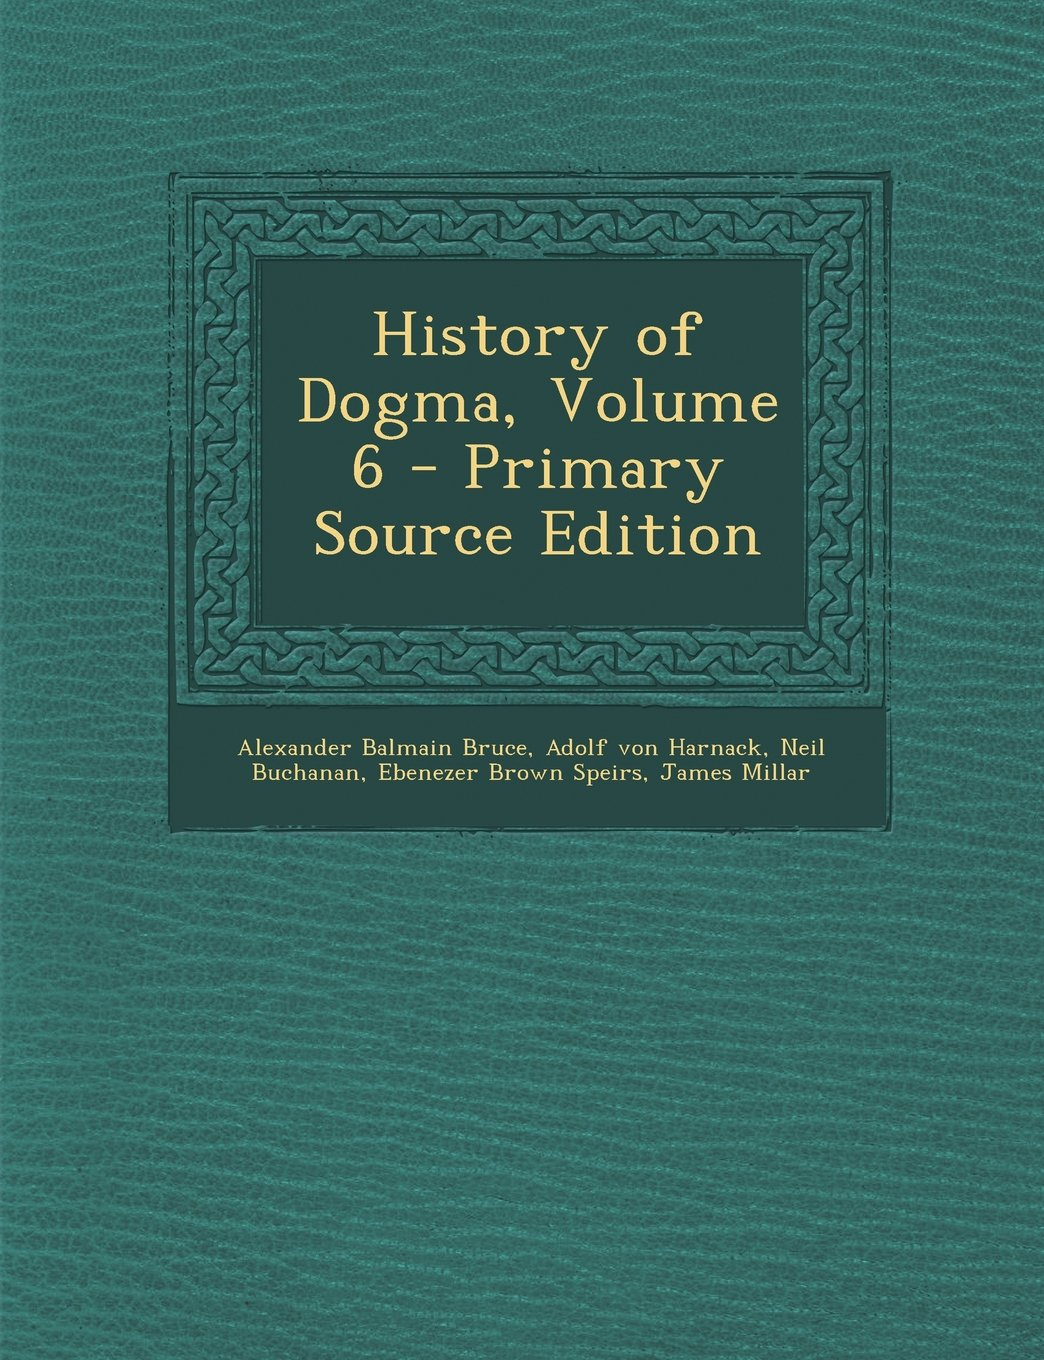 Download History of Dogma, Volume 6 - Primary Source Edition PDF